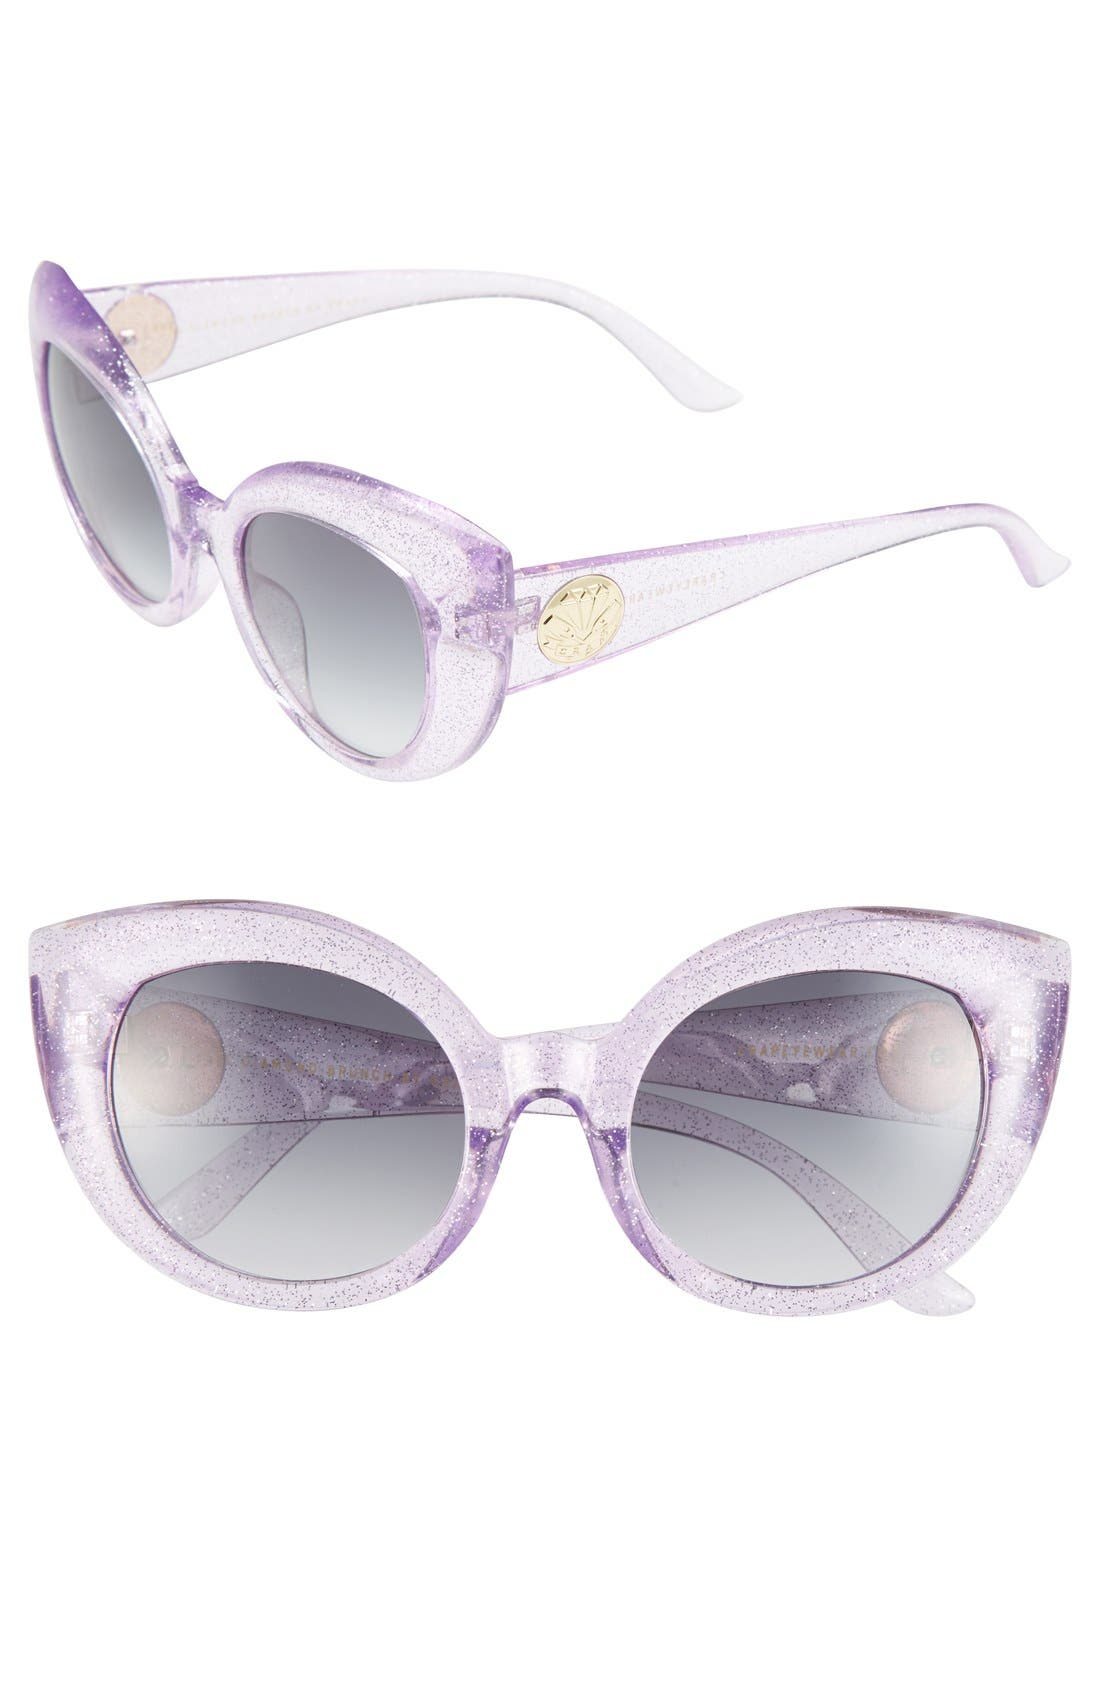 Main Image - CRAP Eyewear 'The Diamond Brunch' 55mm Sunglasses